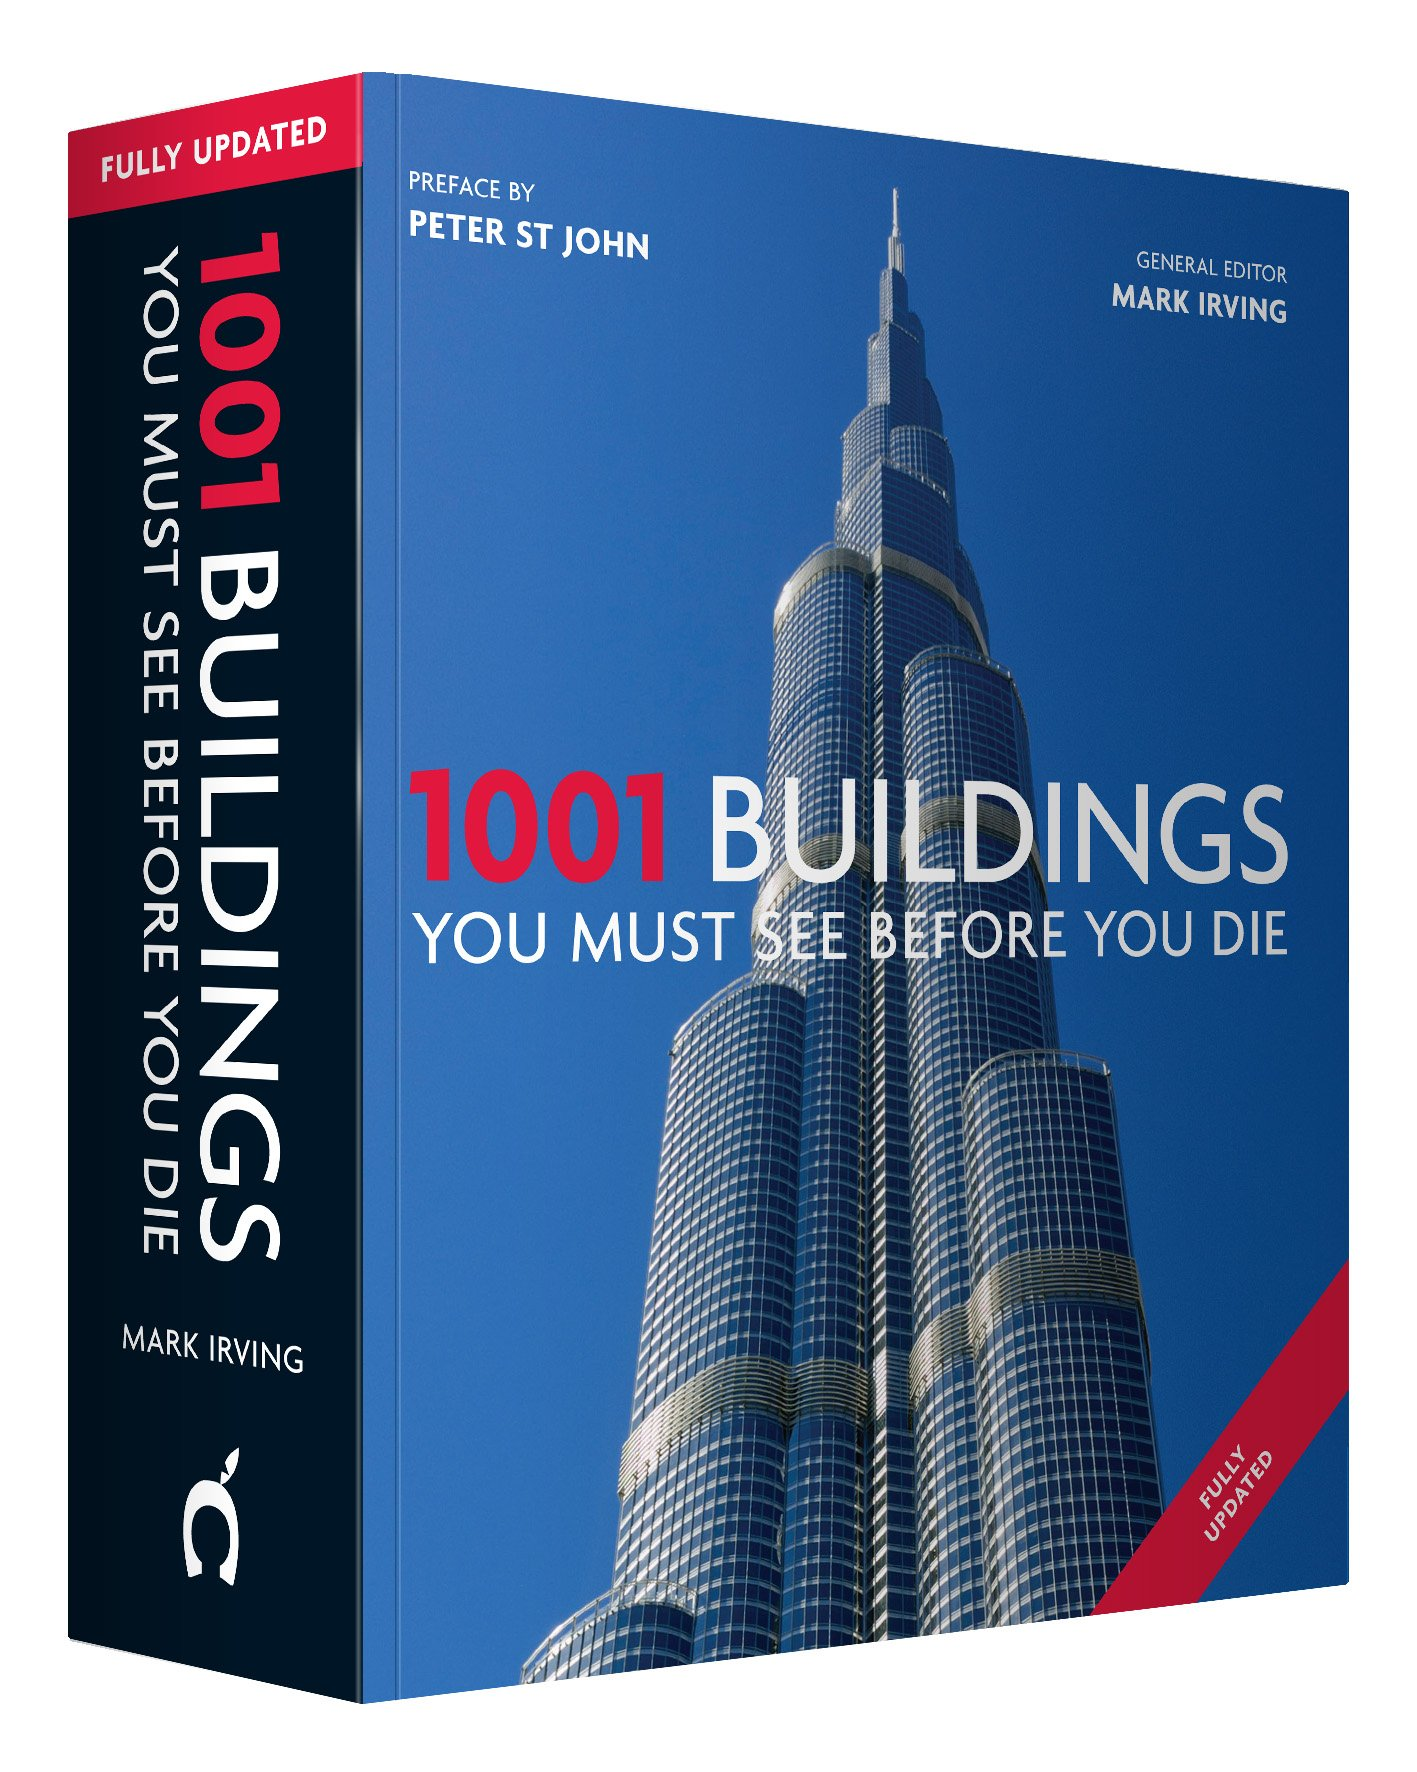 1001 Buildings You Must See Before You Die: Mark Irving: 9781844037384:  Amazon.com: Books